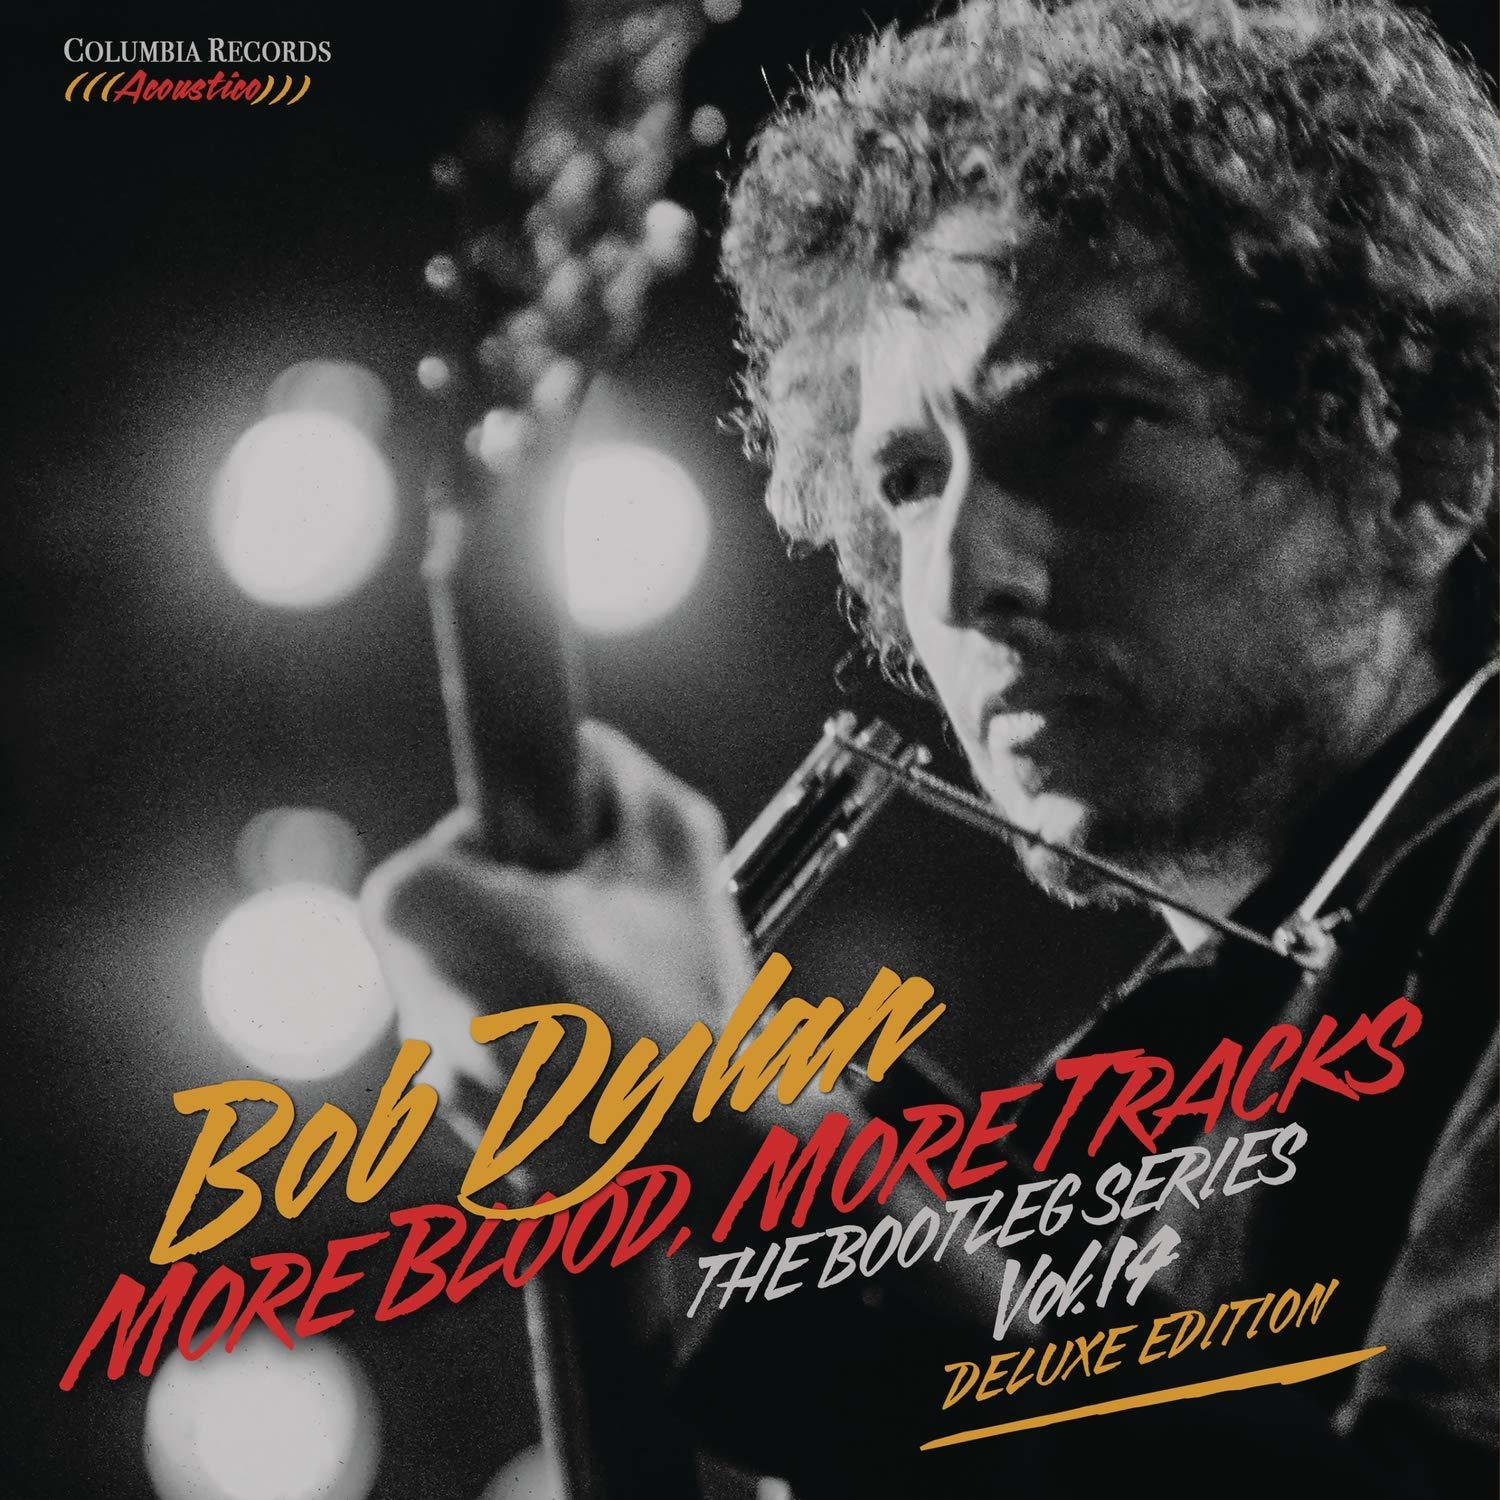 More Blood, More Tracks: The Bootleg Series Vol. 14 by Bob Dylan image